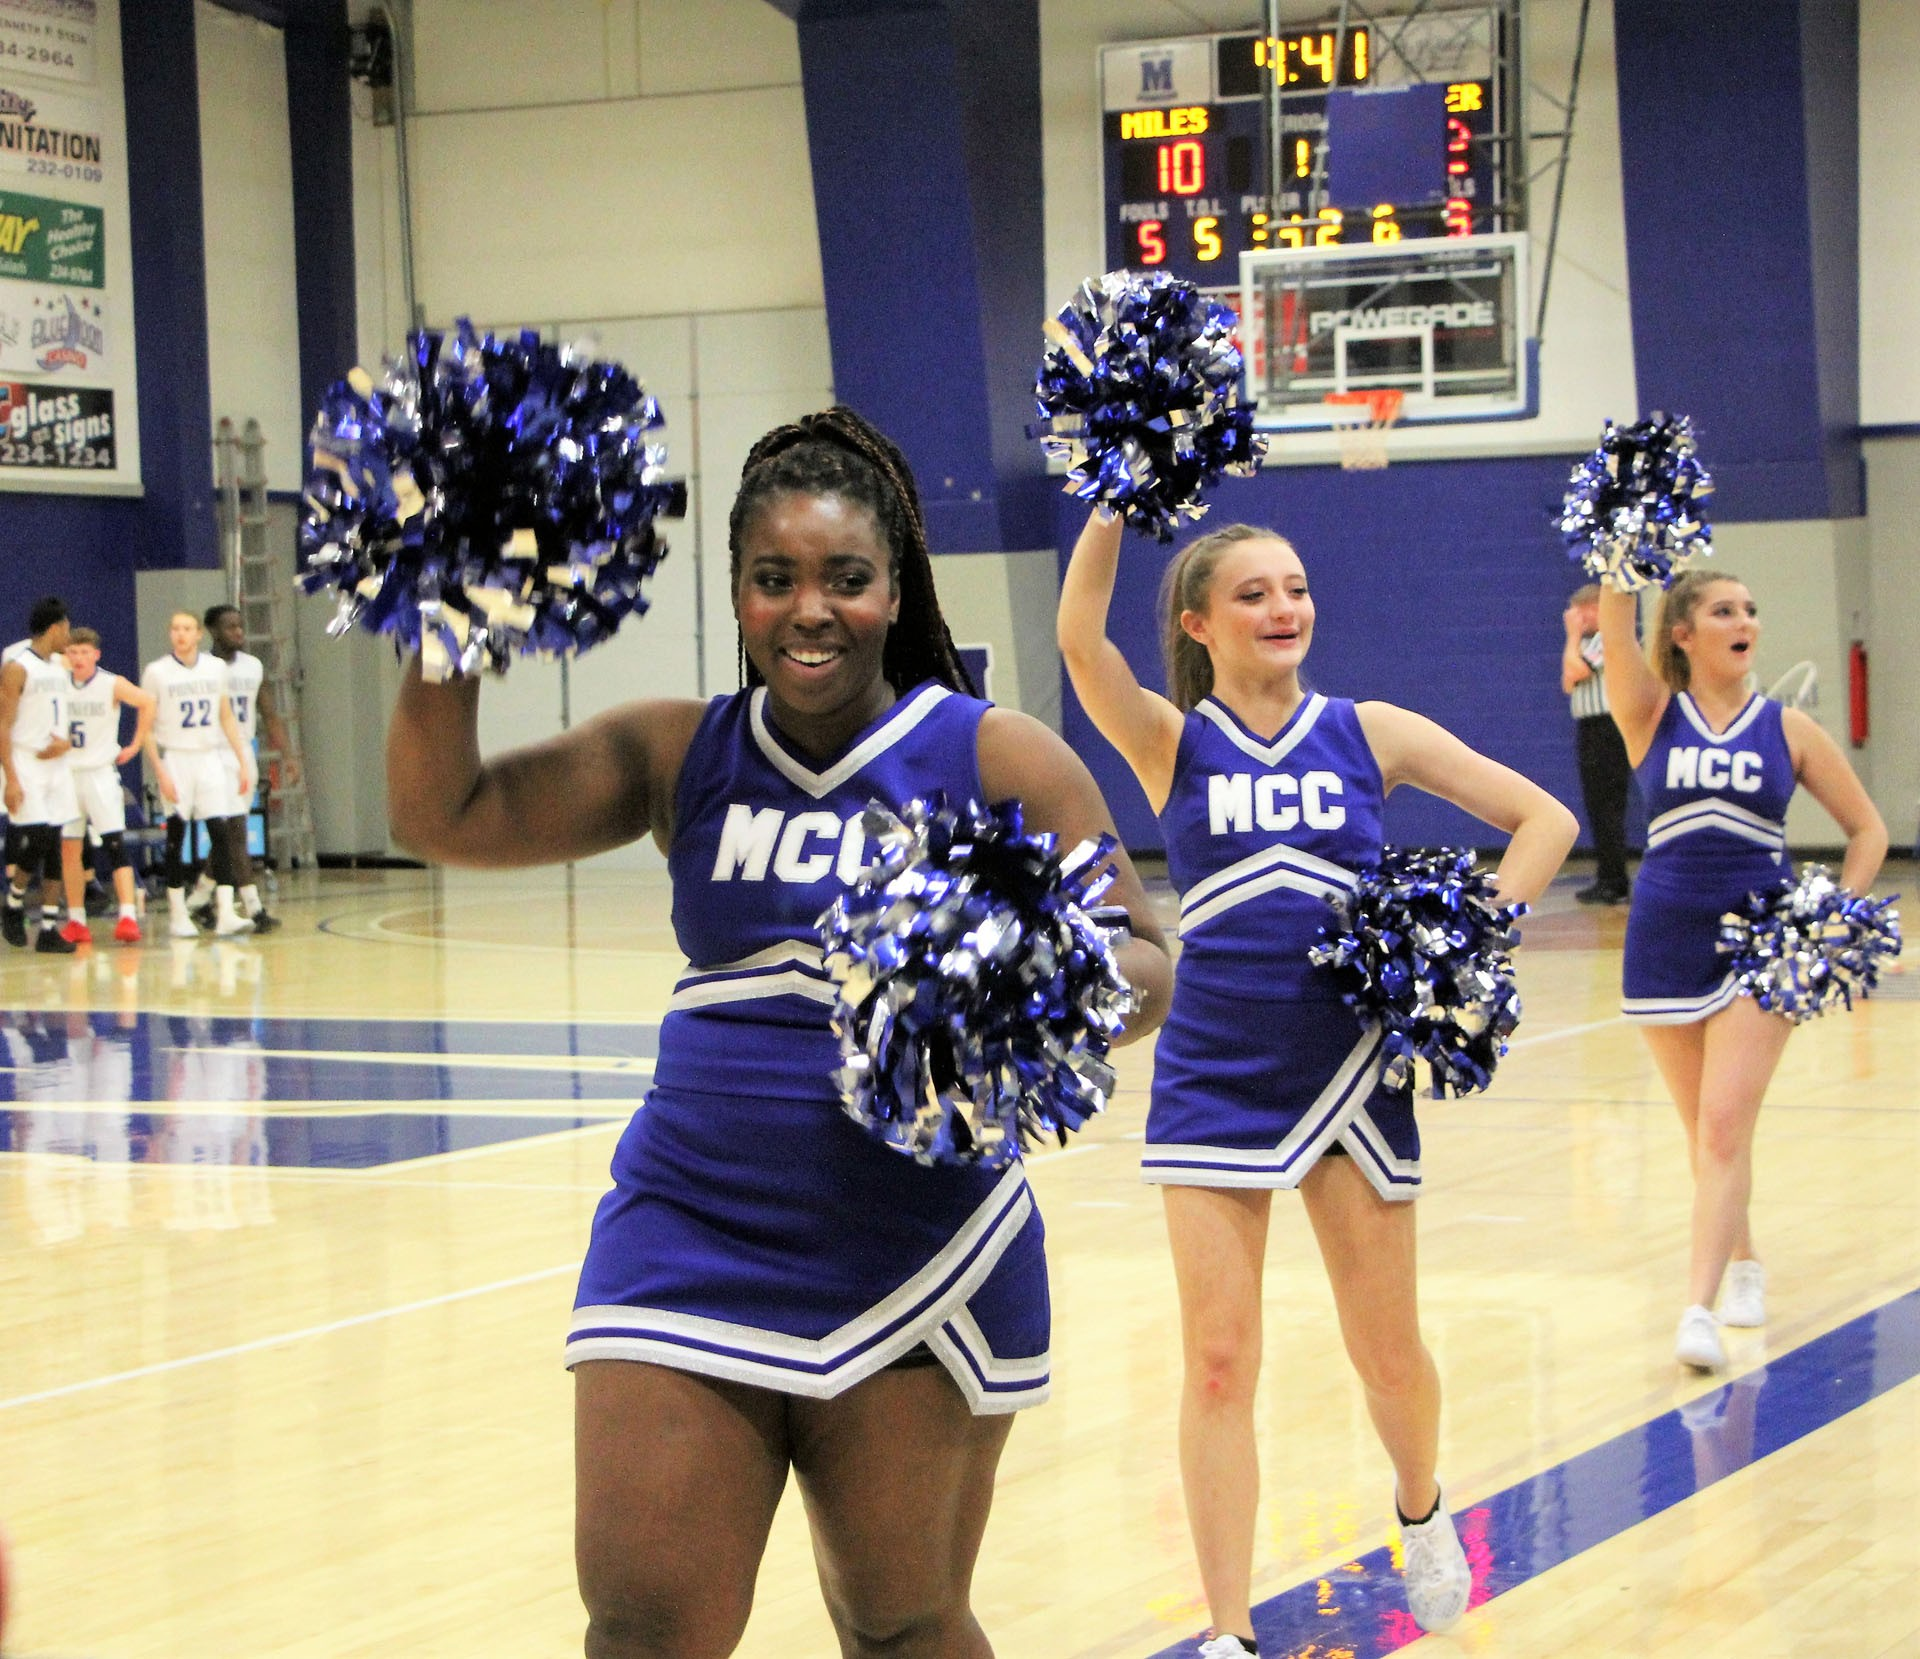 MCC cheerleaders Loundia Whicker, Shyla Greer, and Ashley Becker cheer on the Pioneers during their game against the Casper College Thunderbirds. While the MCC cheerleading team is small they pack a lot of heart into each cheer.STAR PHOTO/Sharon Moore